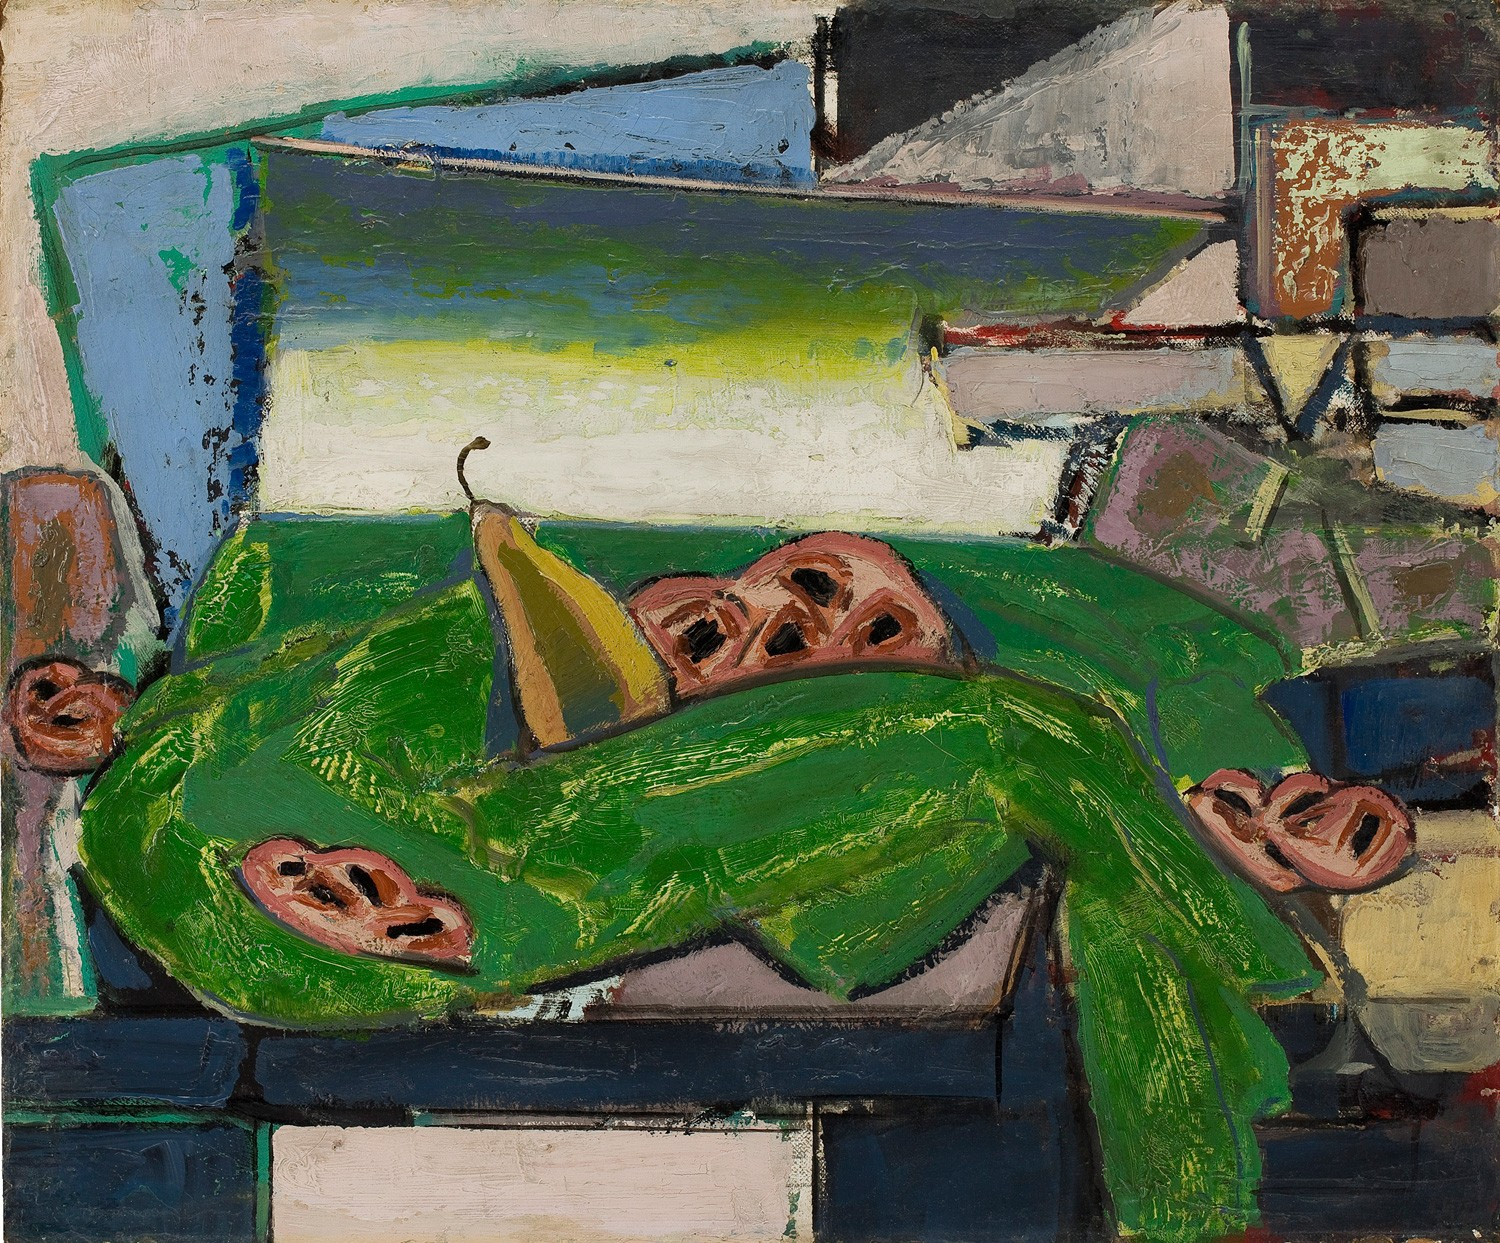 This work by Alfred Henry Maurer shows a cubist still-life with bright green and pears